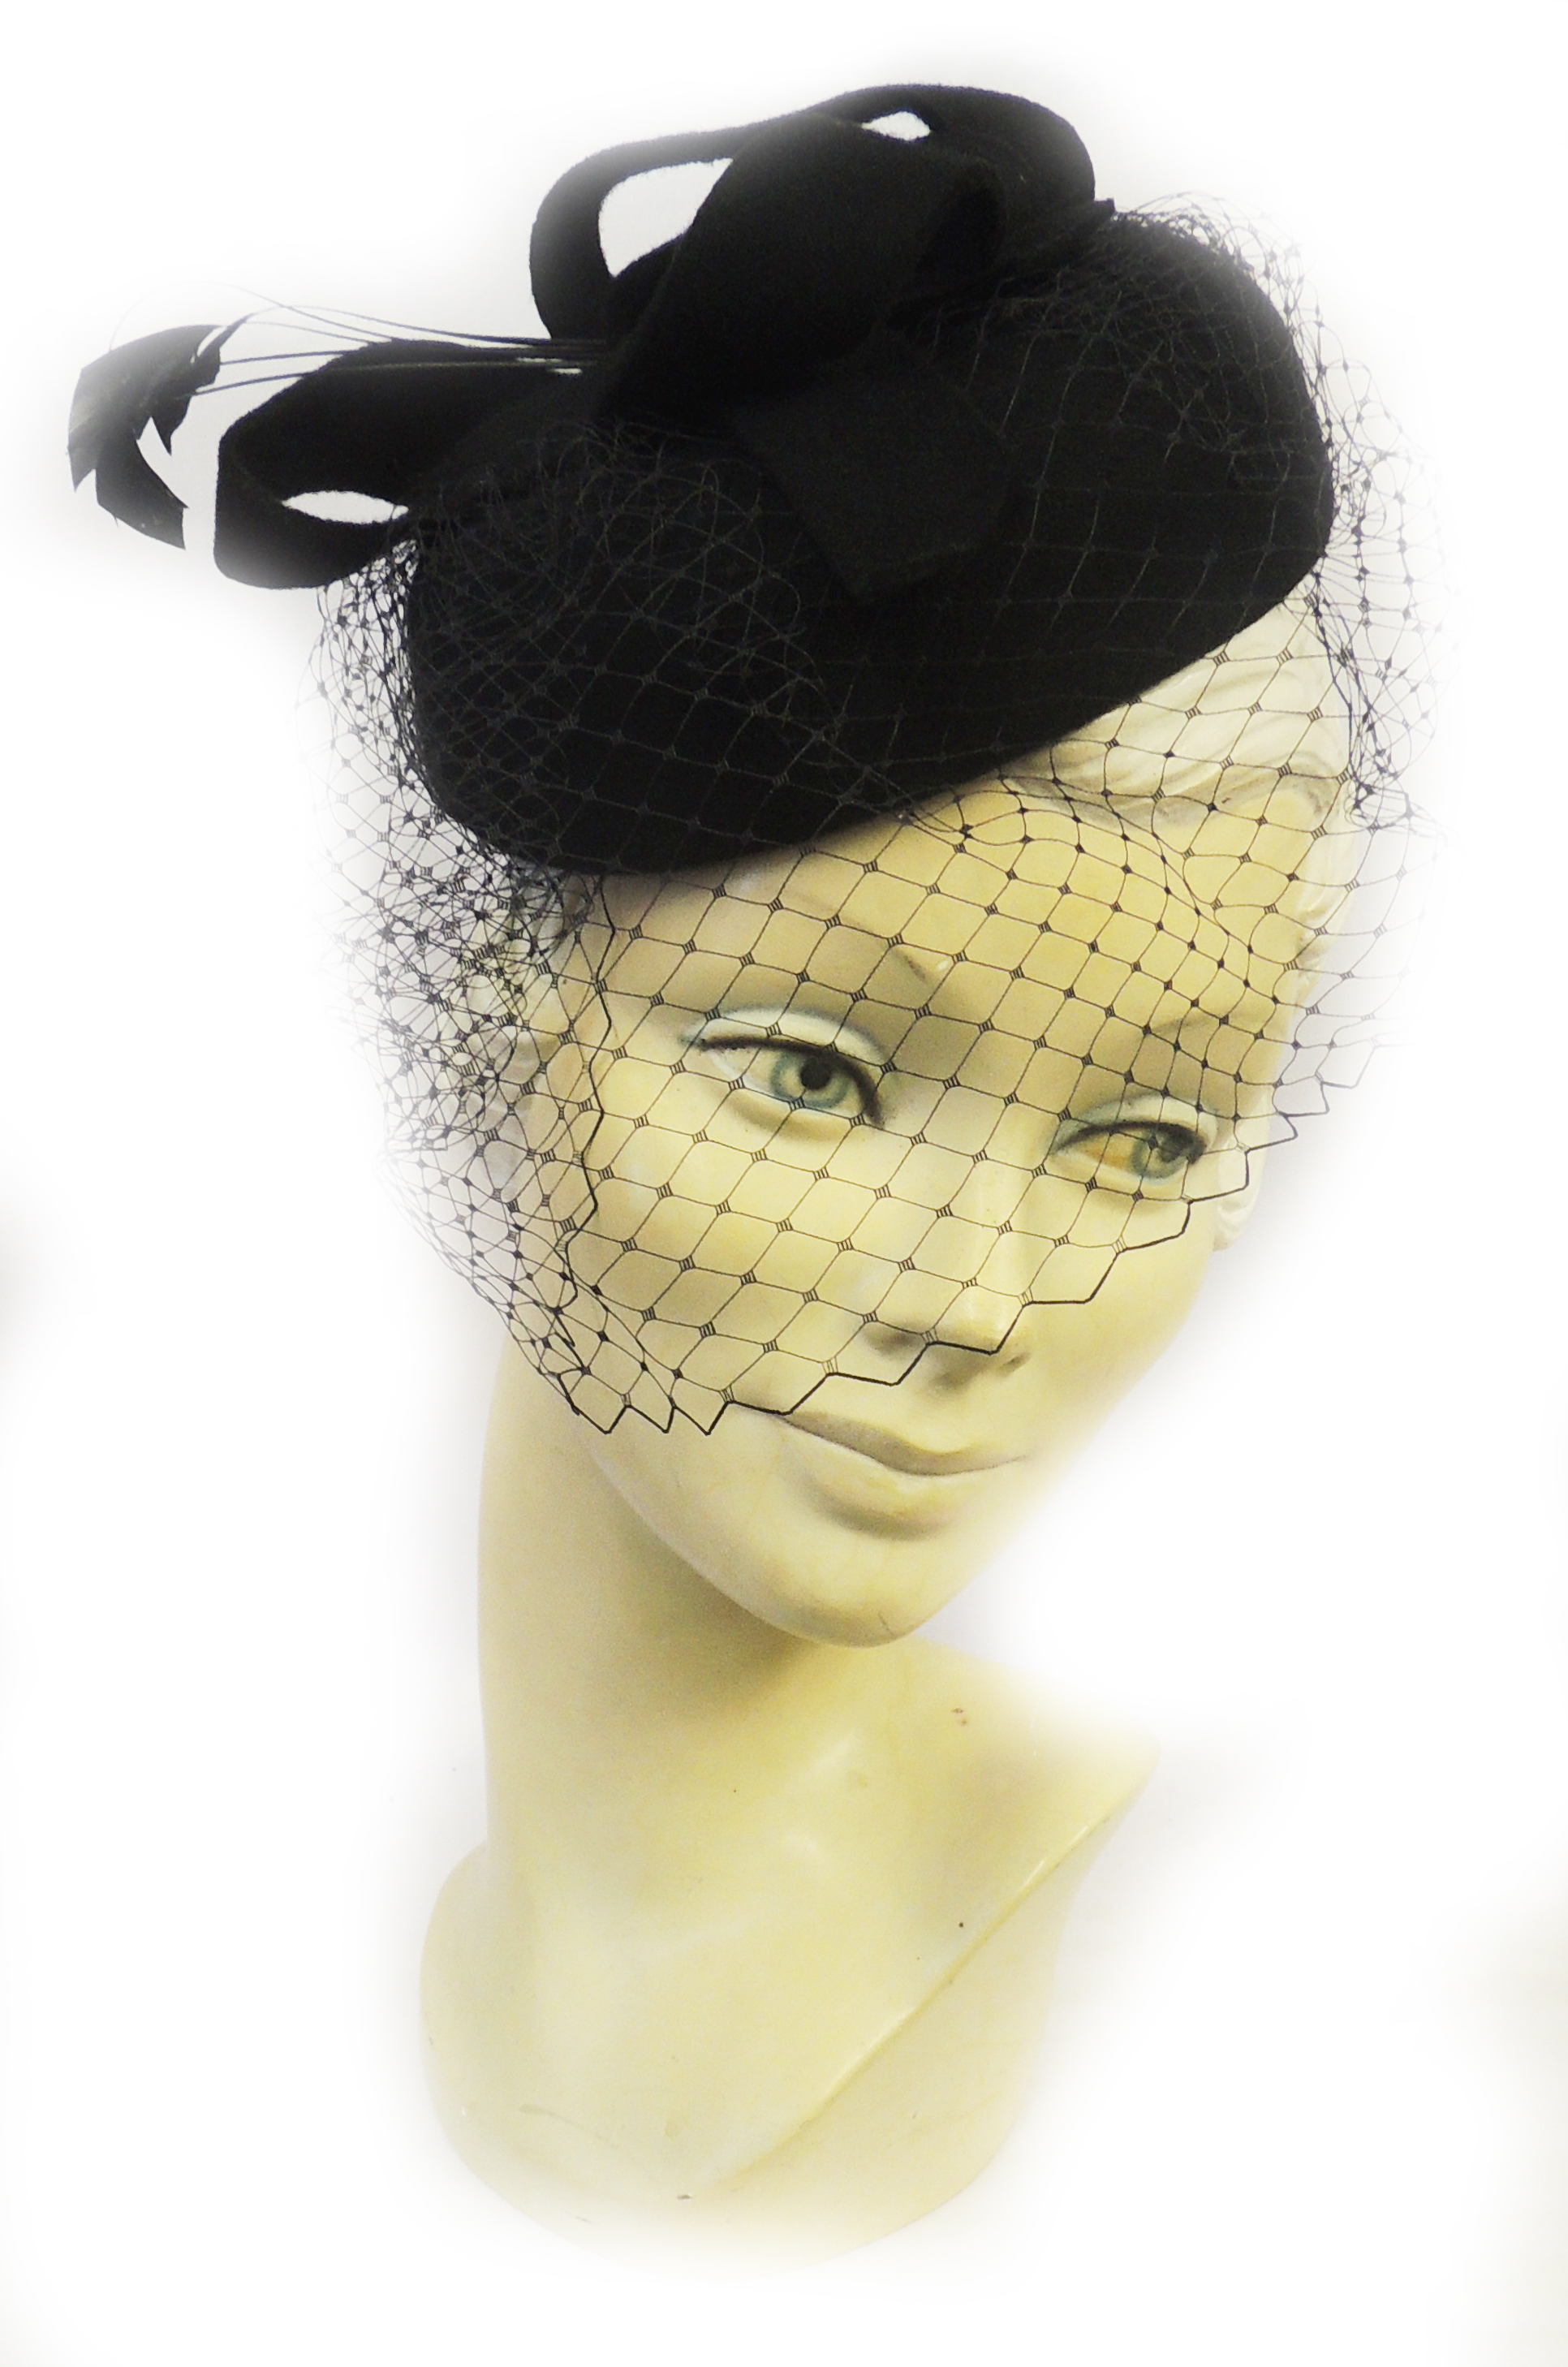 1940s Style Hats    New Ladies VTG 1940s 1950s Retro WW2 Wartime Pin-up Pill Box Hat with Veil $29.95 AT vintagedancer.com